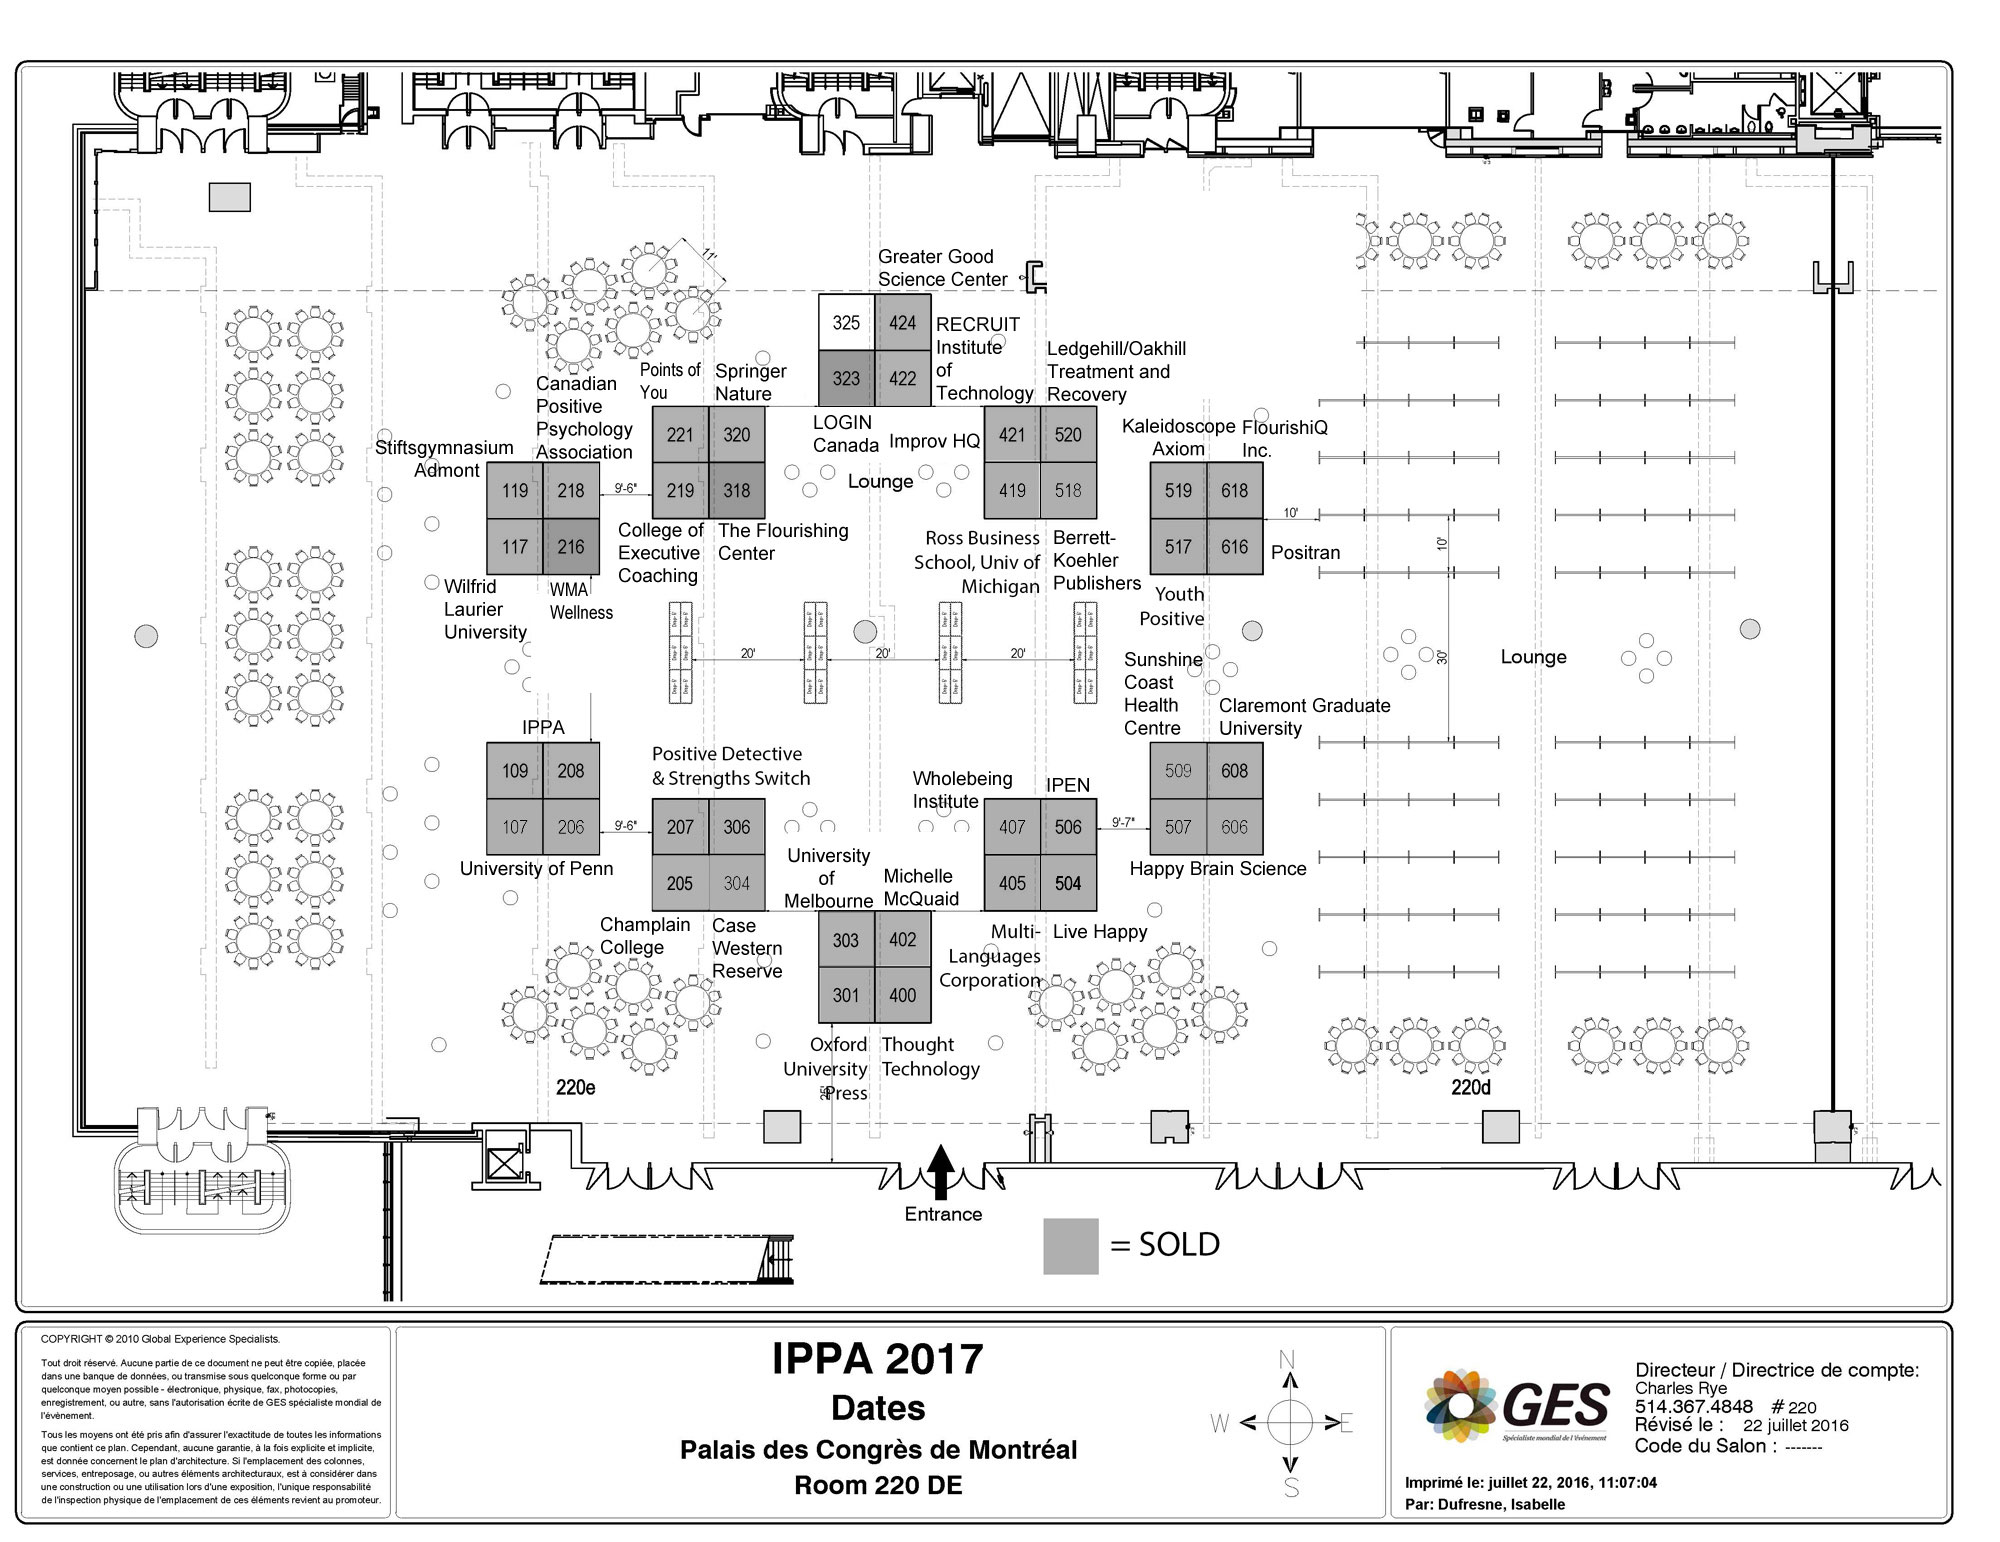 international positive psychology association exhibitors sponsors this agreement becomes valid upon approval by ippa board and or wcpp program committee and a confirmation of exhibition has been issued with receipt of